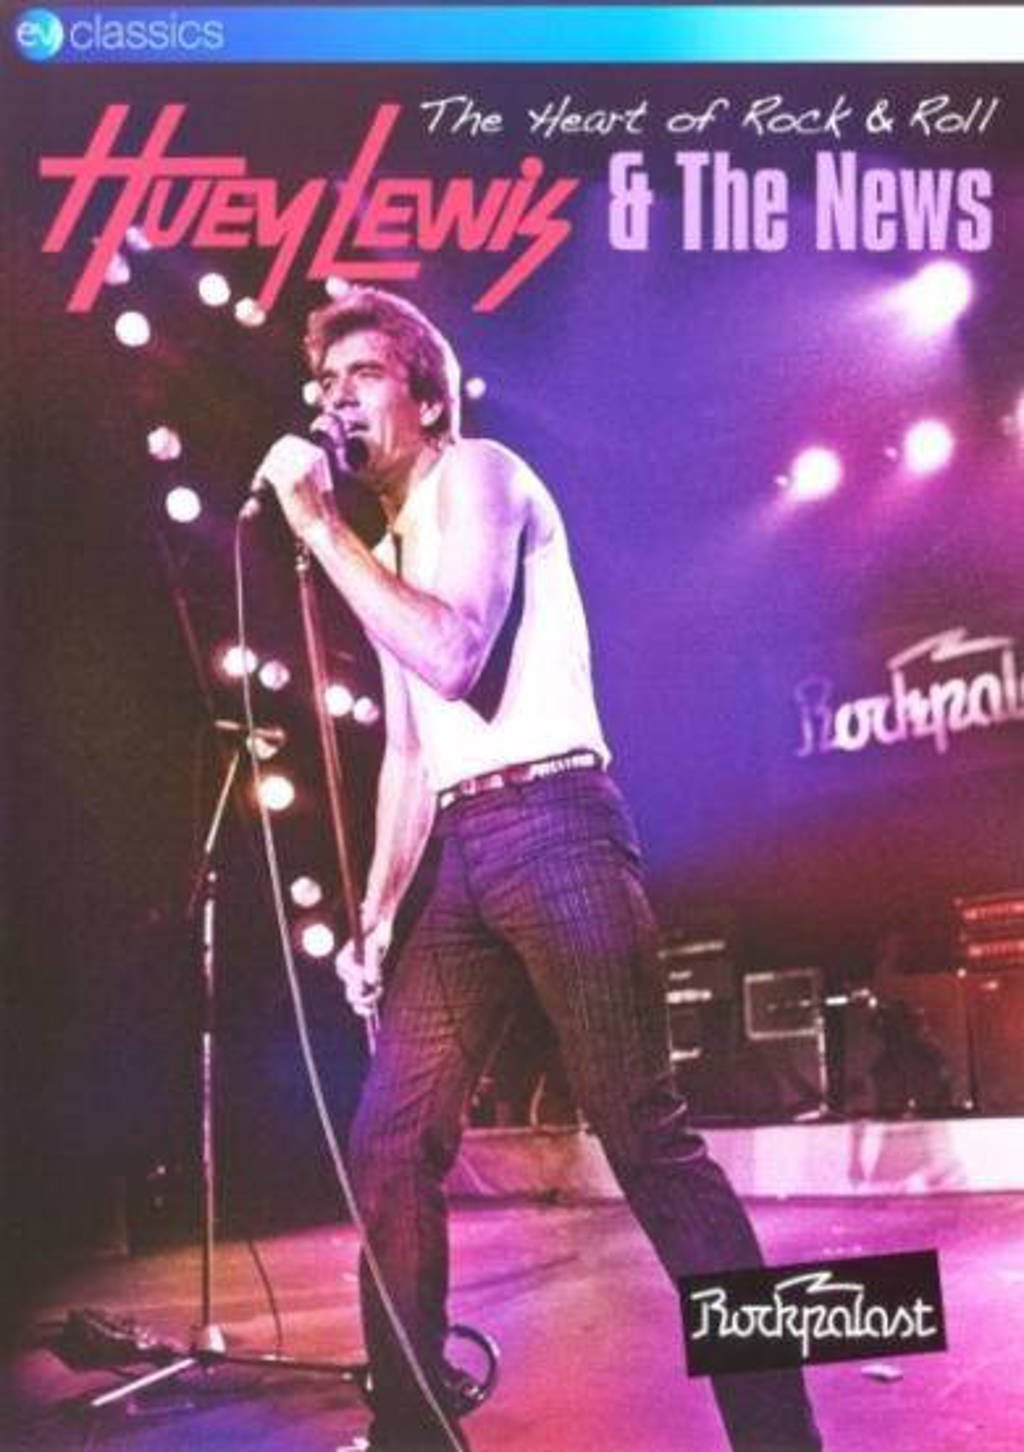 Huey Lewis & The News - The Heart Of Rock And Roll (DVD)